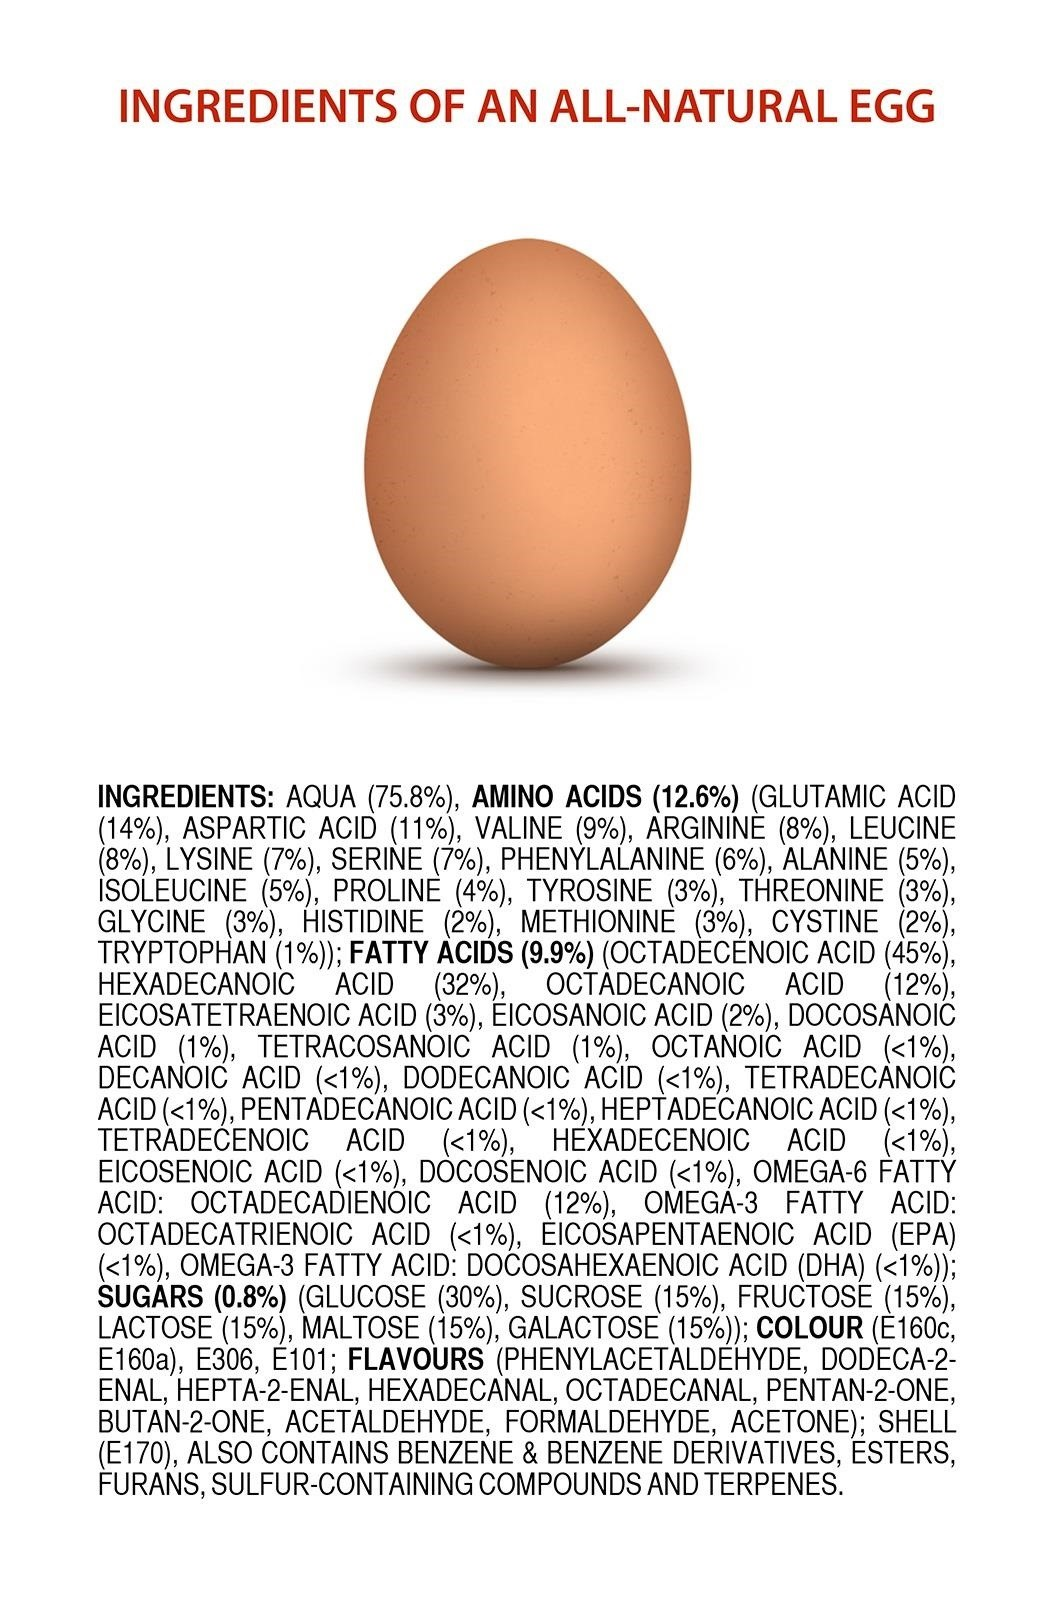 "Food Chemistry: The ""Ingredients"" in Organic, All-Natural, Fruits & Eggs Are Not What You'd Expect"